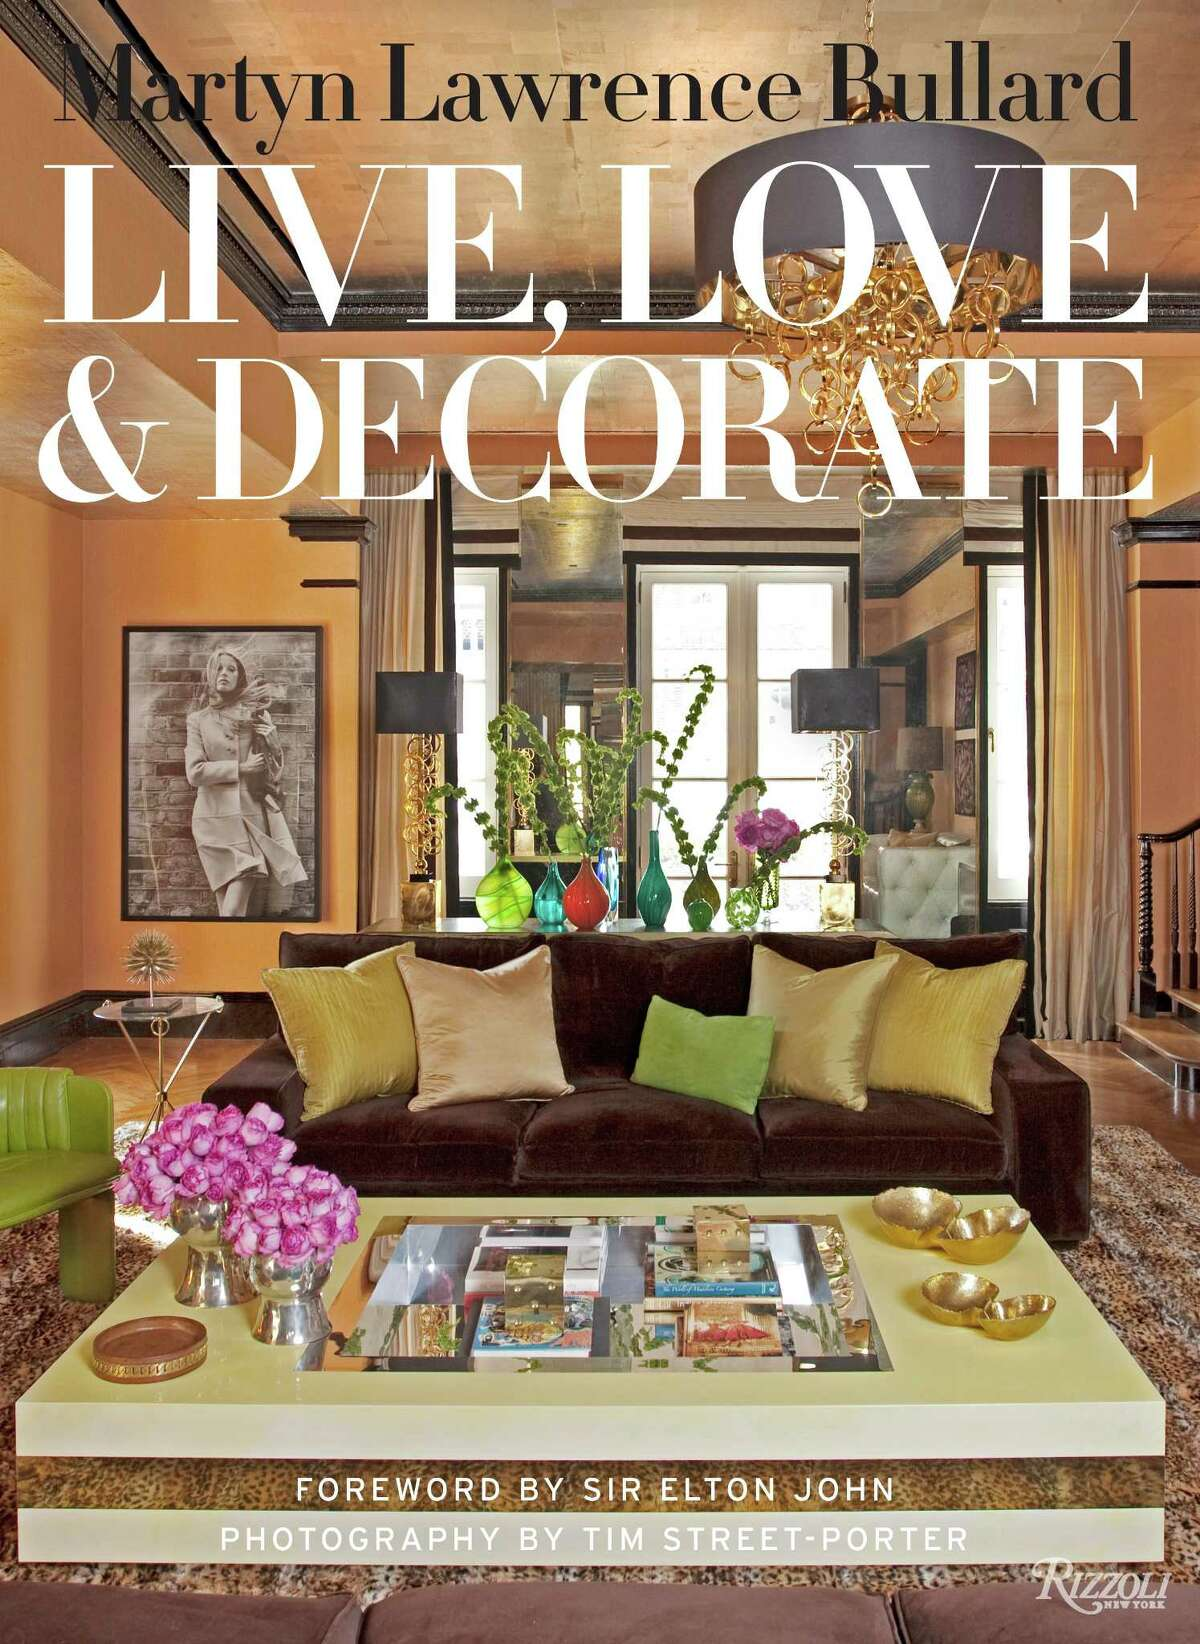 """Martyn Lawrence Bullard's """"Live, Love & Decorate"""" chronicles his home designs for celebrities including Elton John and Cher. ($50, Rizzoli.) He speaks March 27 at the Alkusari Stone Showroom, Suite 229 at the Houston Design Center, 7026 Old Katy Road."""